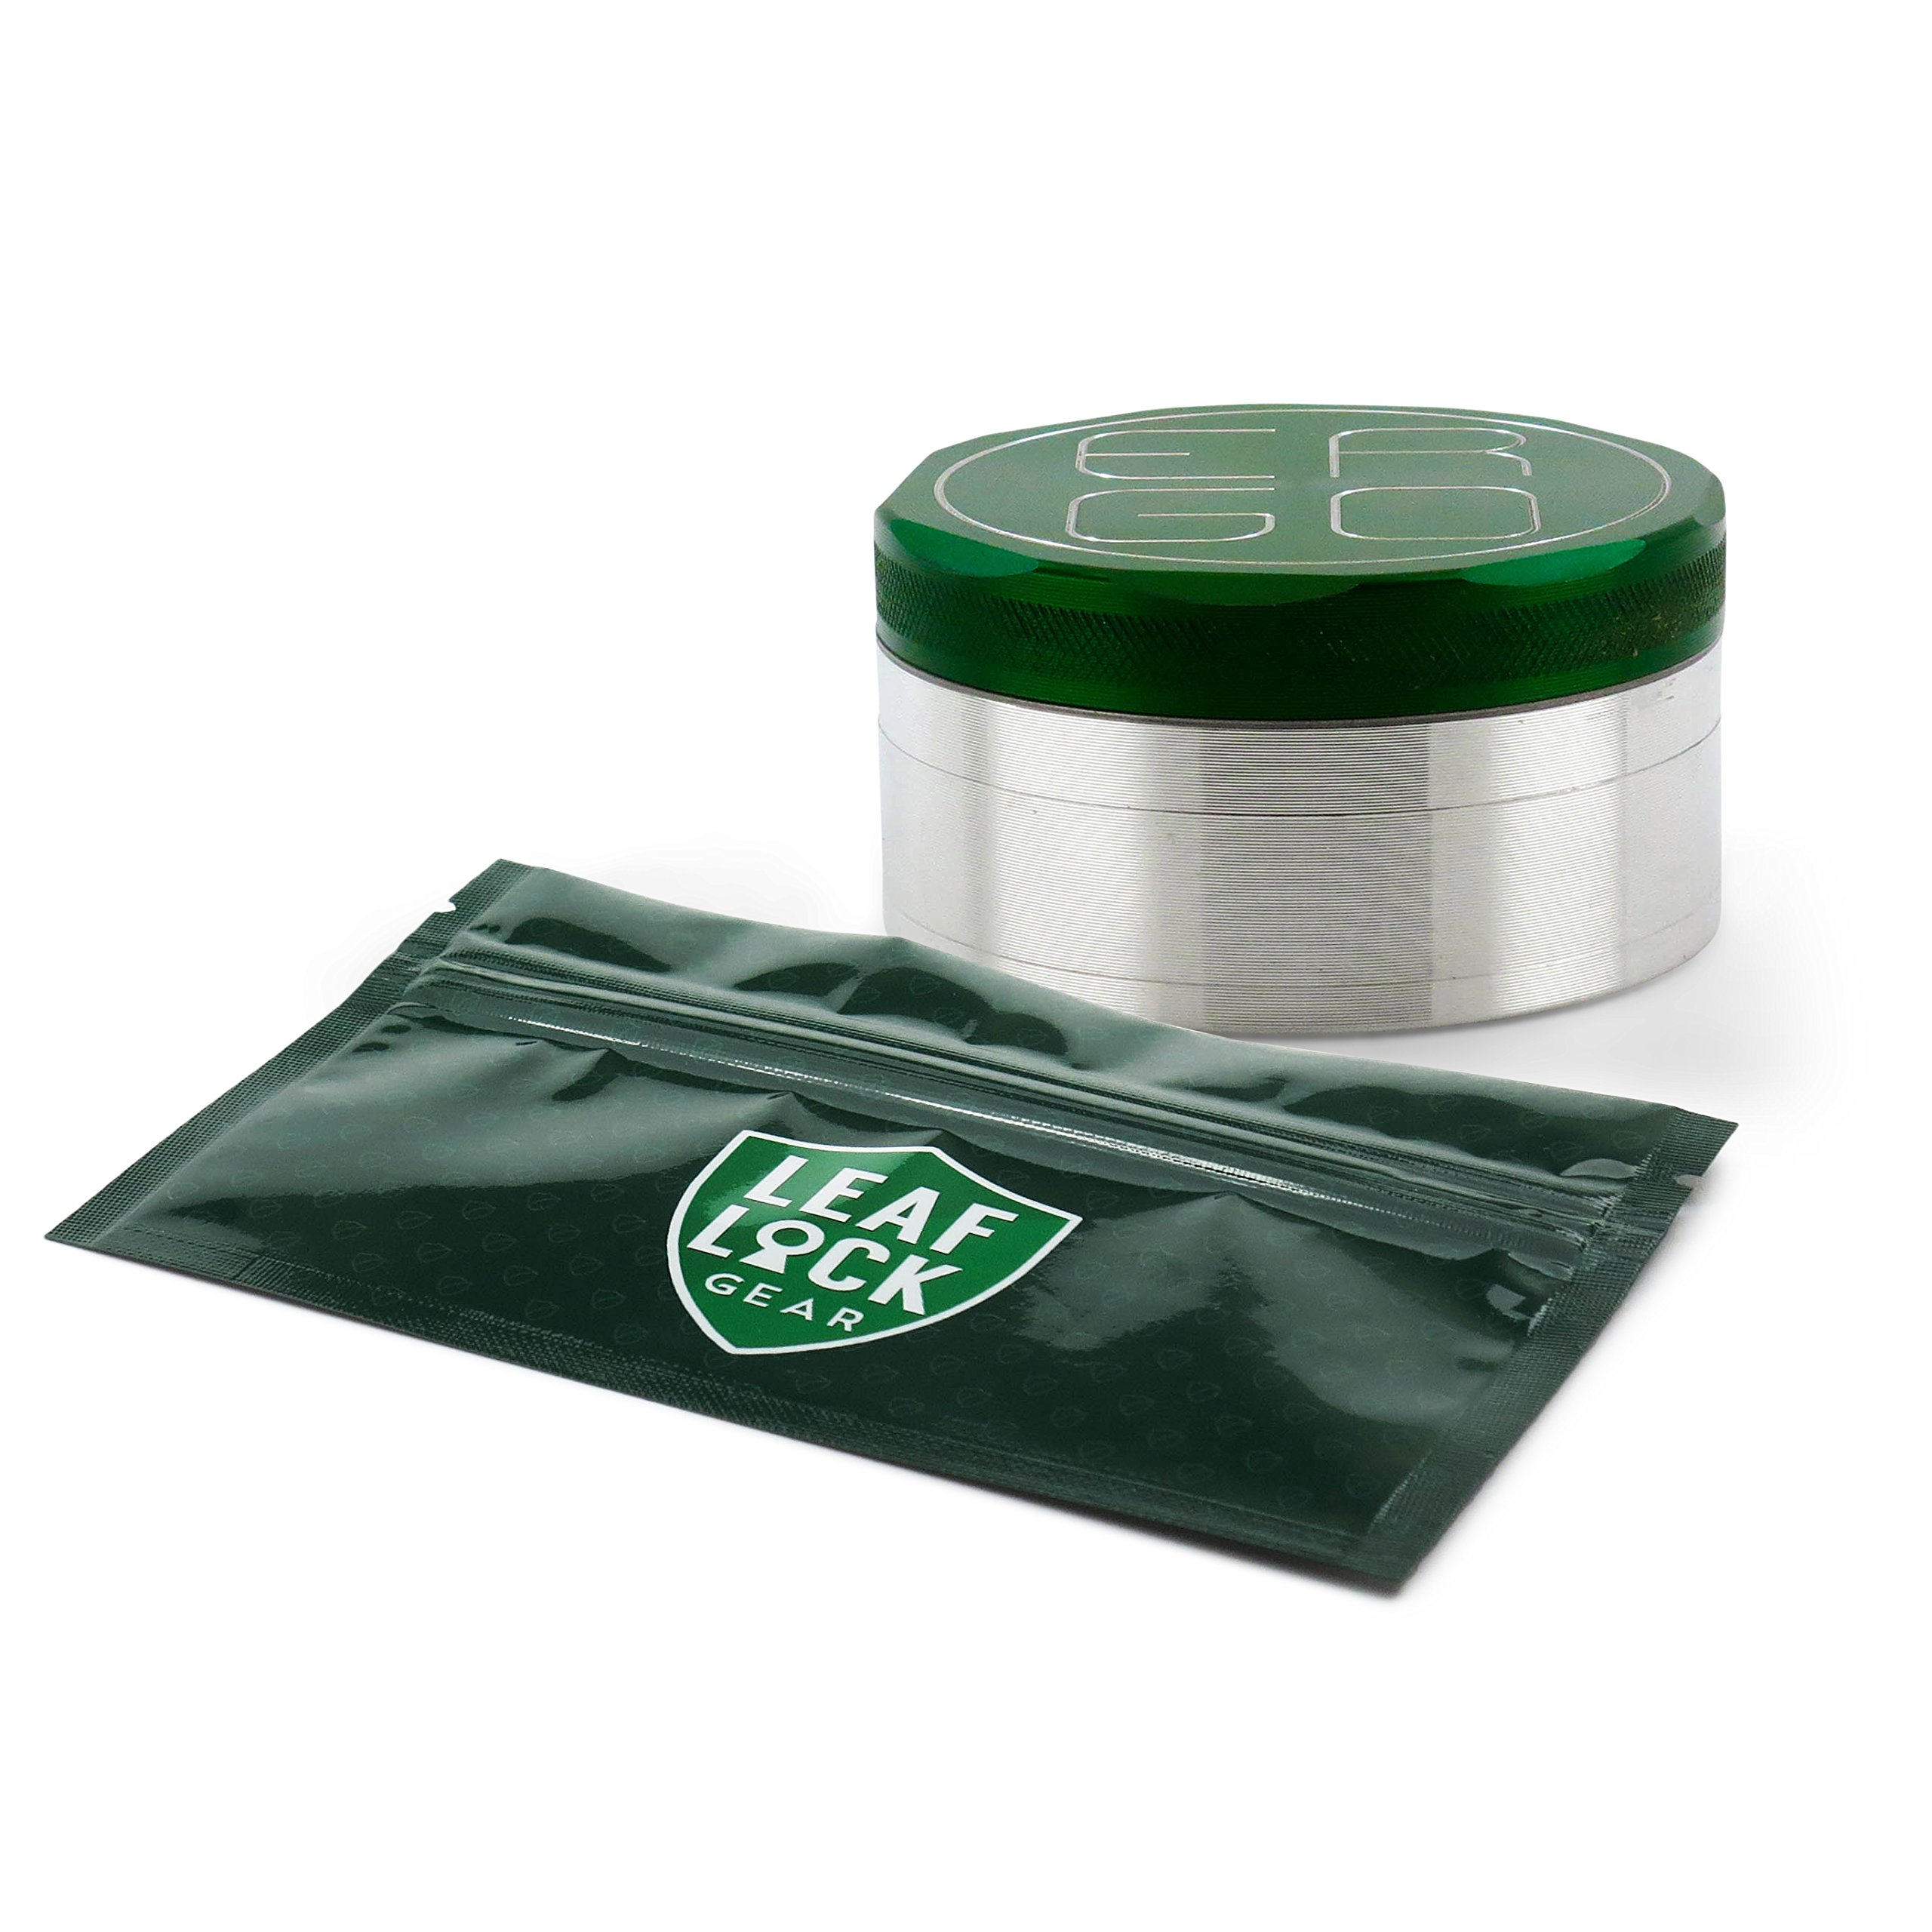 ERGO 4-Piece 90mm Grinder (Green) with Leaf Lock Gear Spill Proof Pouch